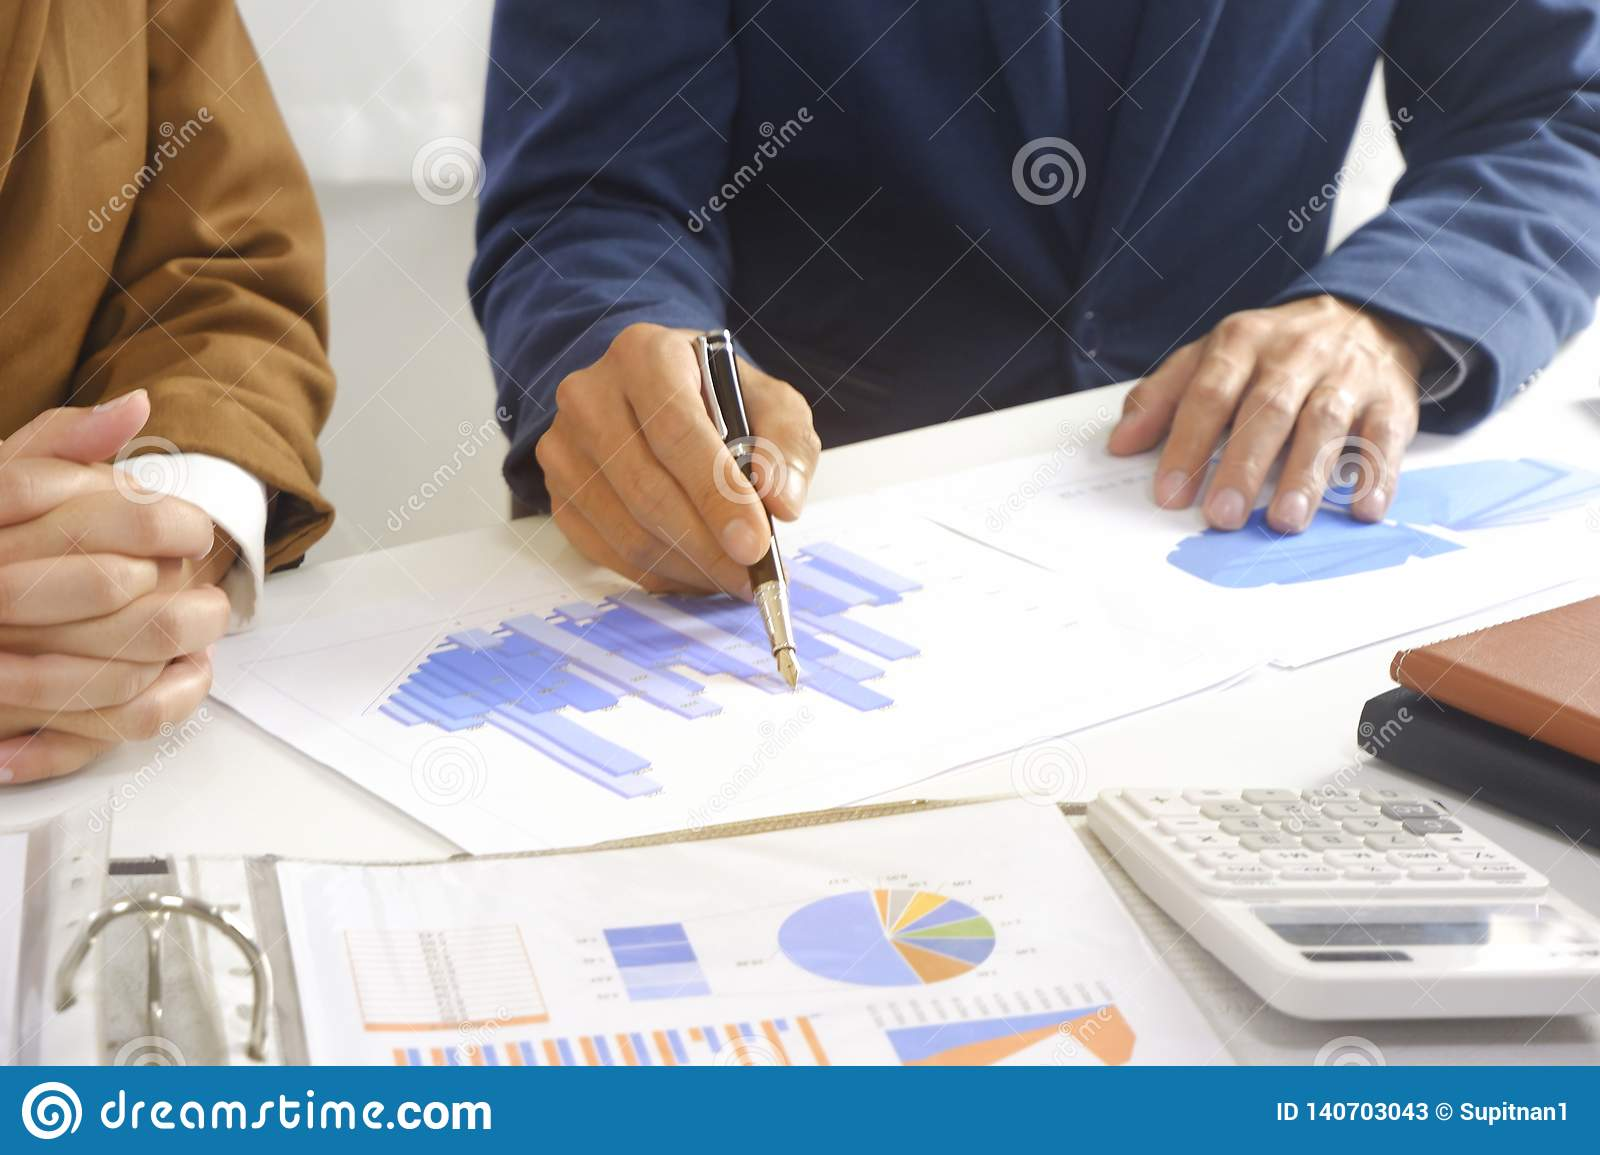 Businesspeople meeting design idea, professional investor working in office for start up new project